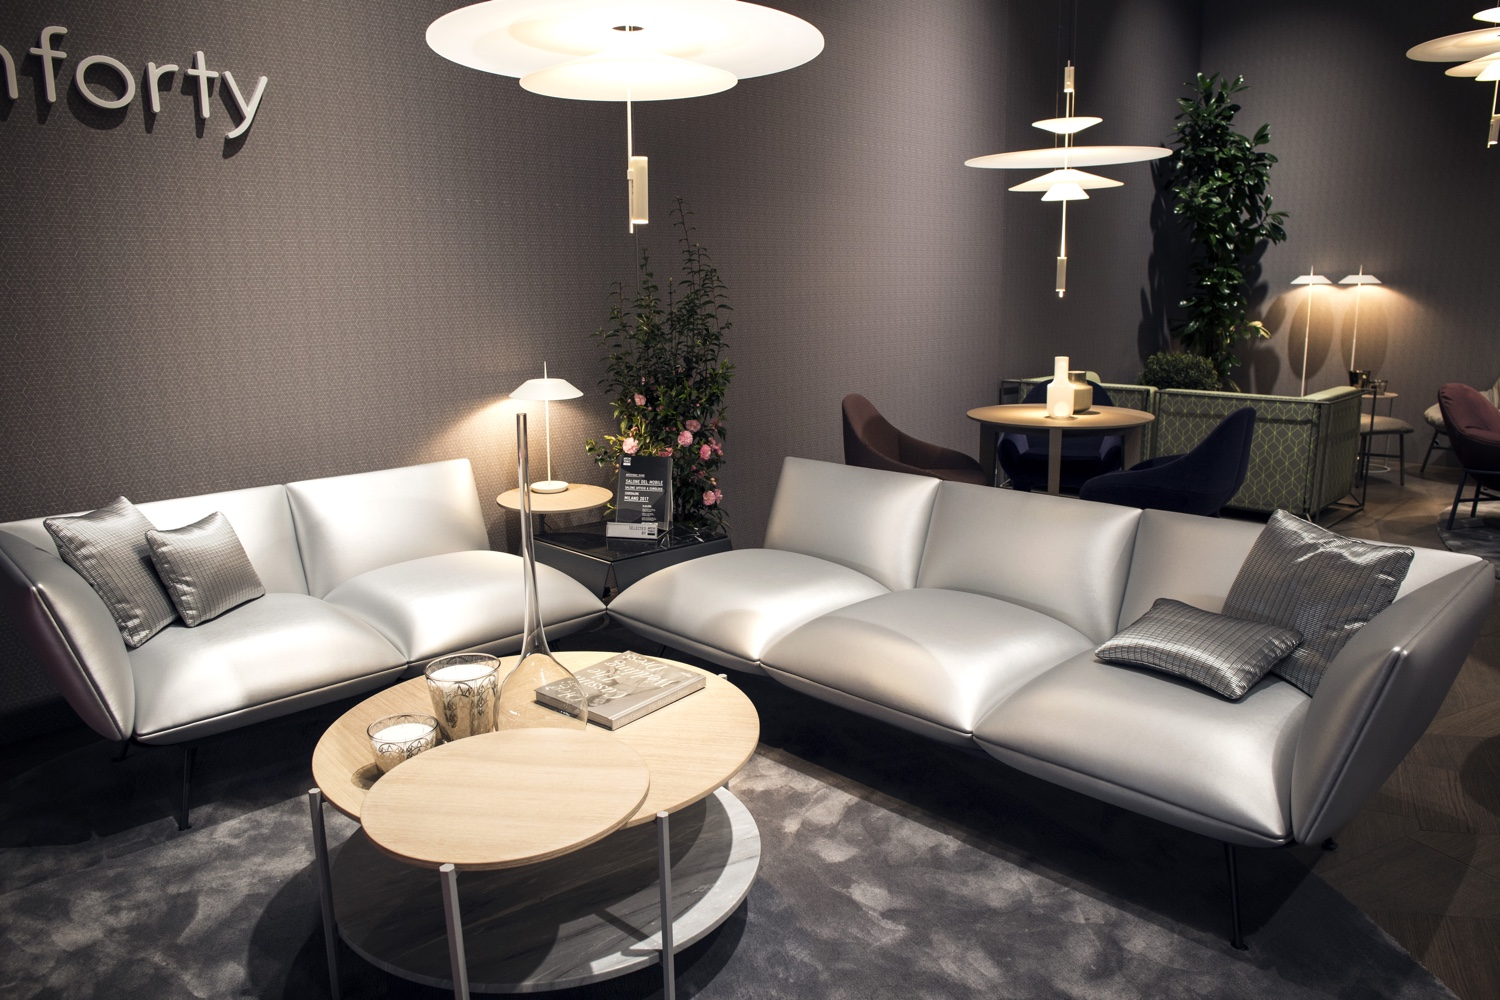 Comforty-Altair-sofa-system